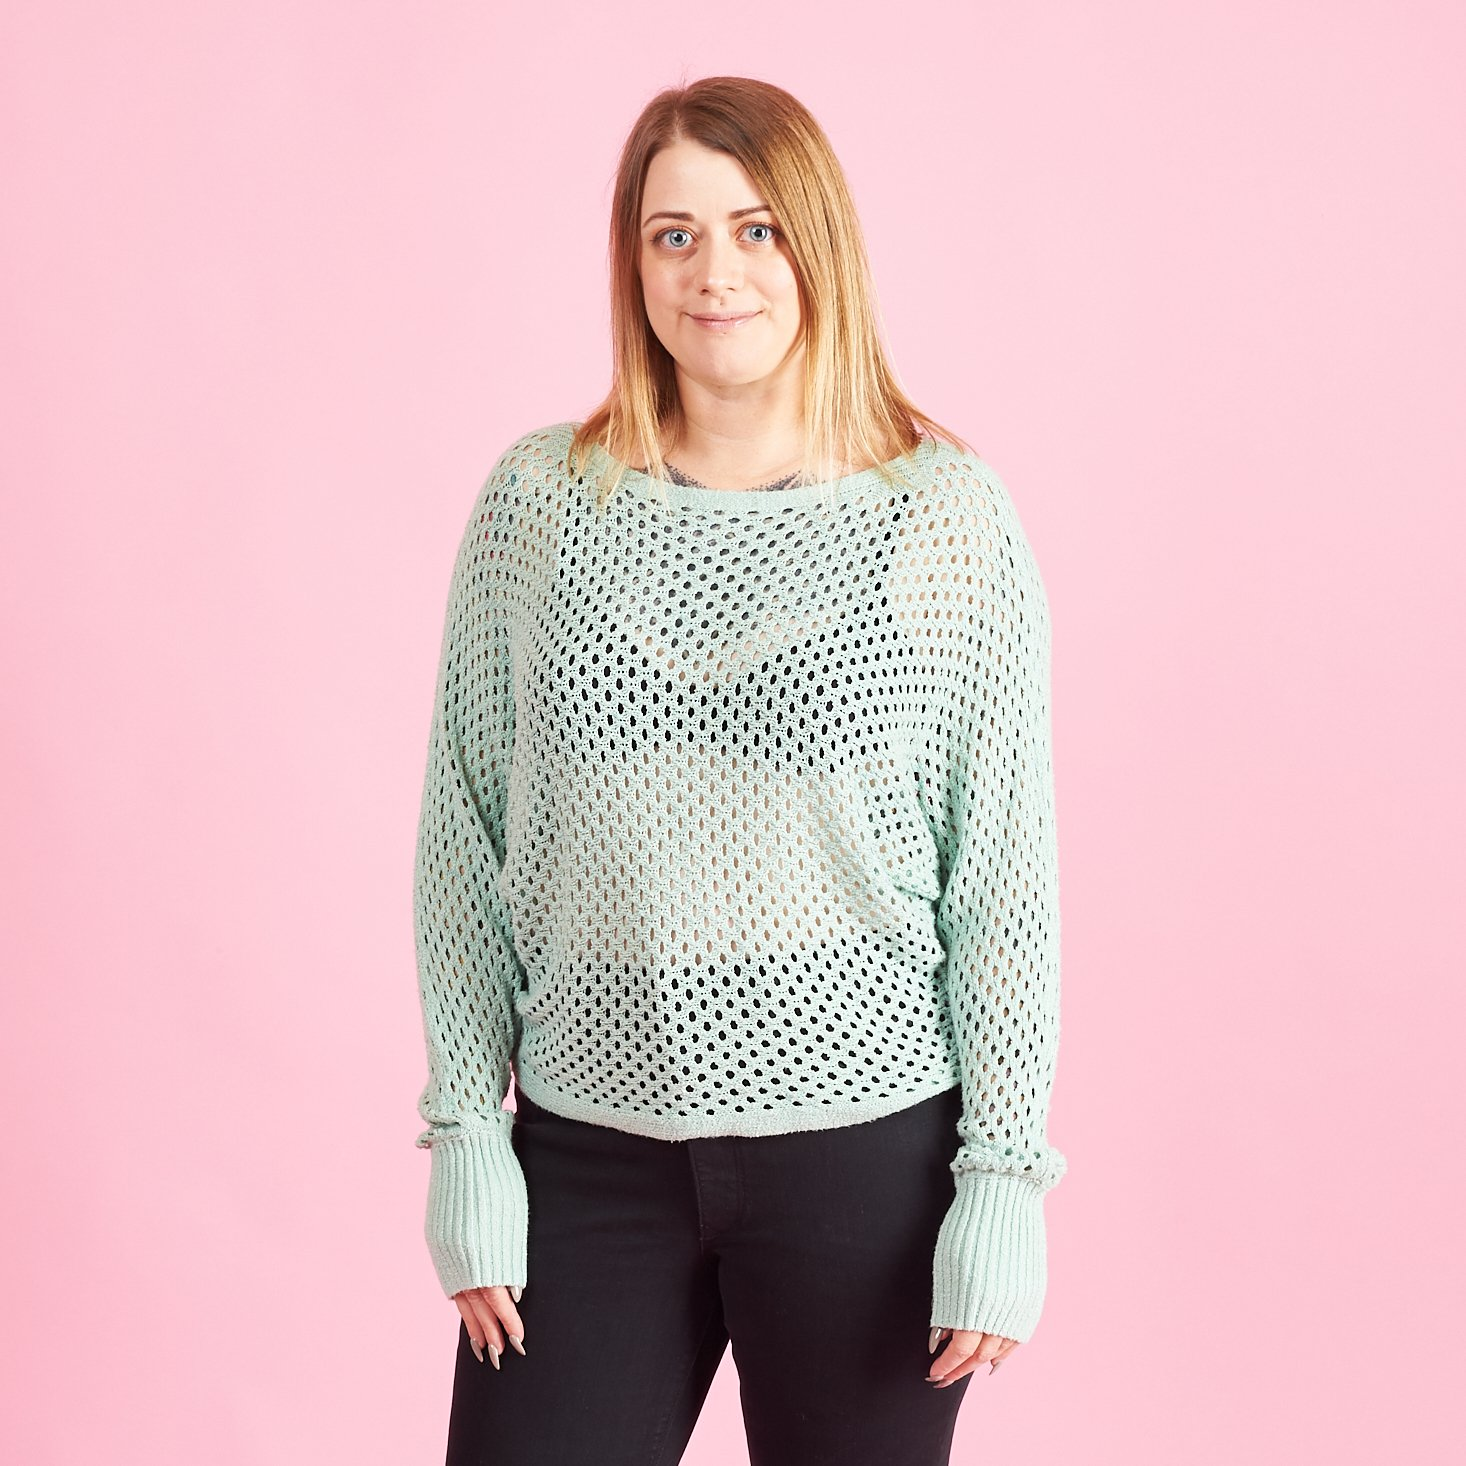 Marne in Open Stitch Dolman Sleeve Sweater in Light Green